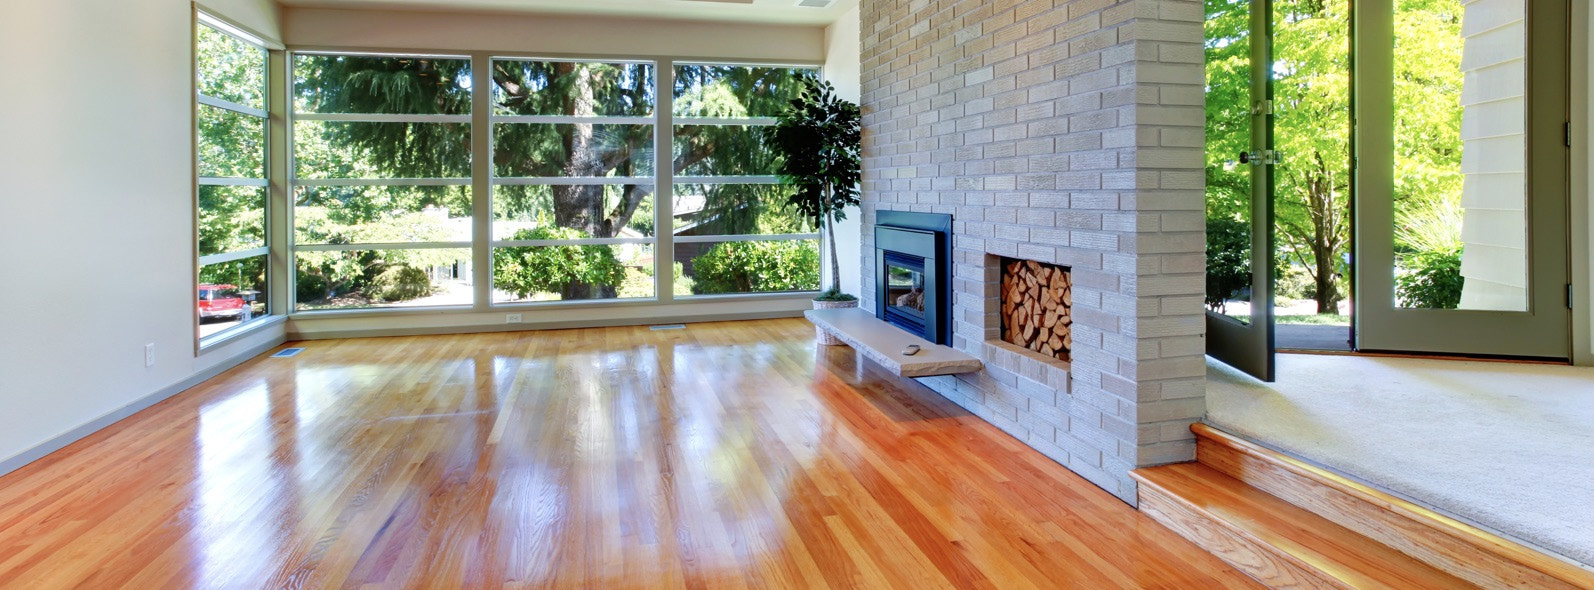 house cleaning services in orlando